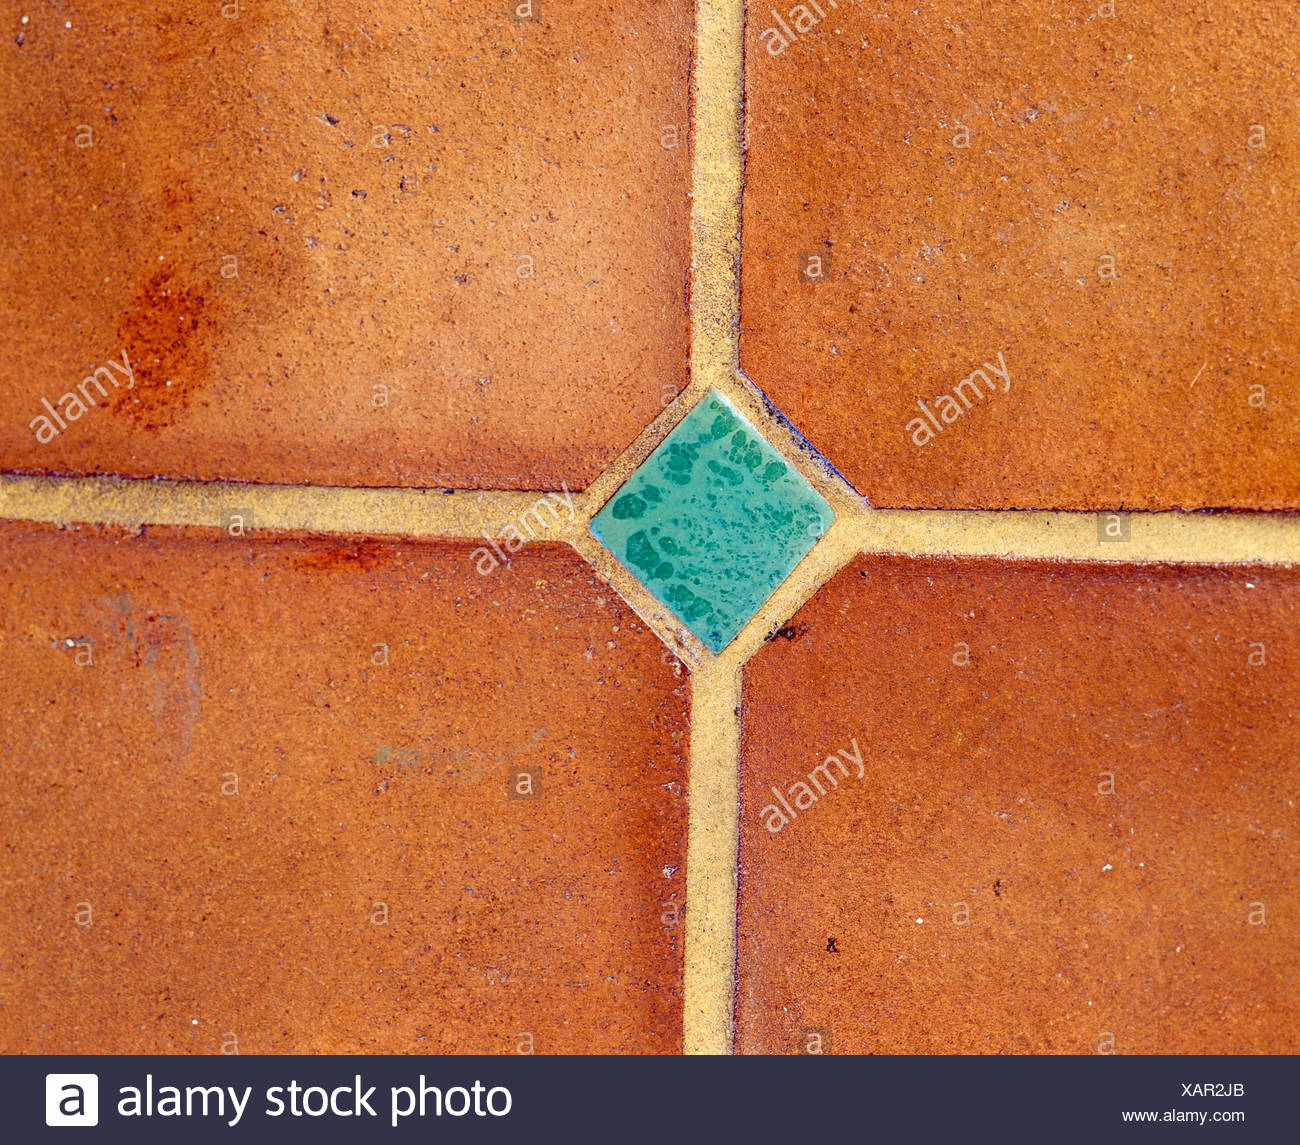 Close Up Of Terracotta Floor Tiles With Turquoise Insert Stock Photo